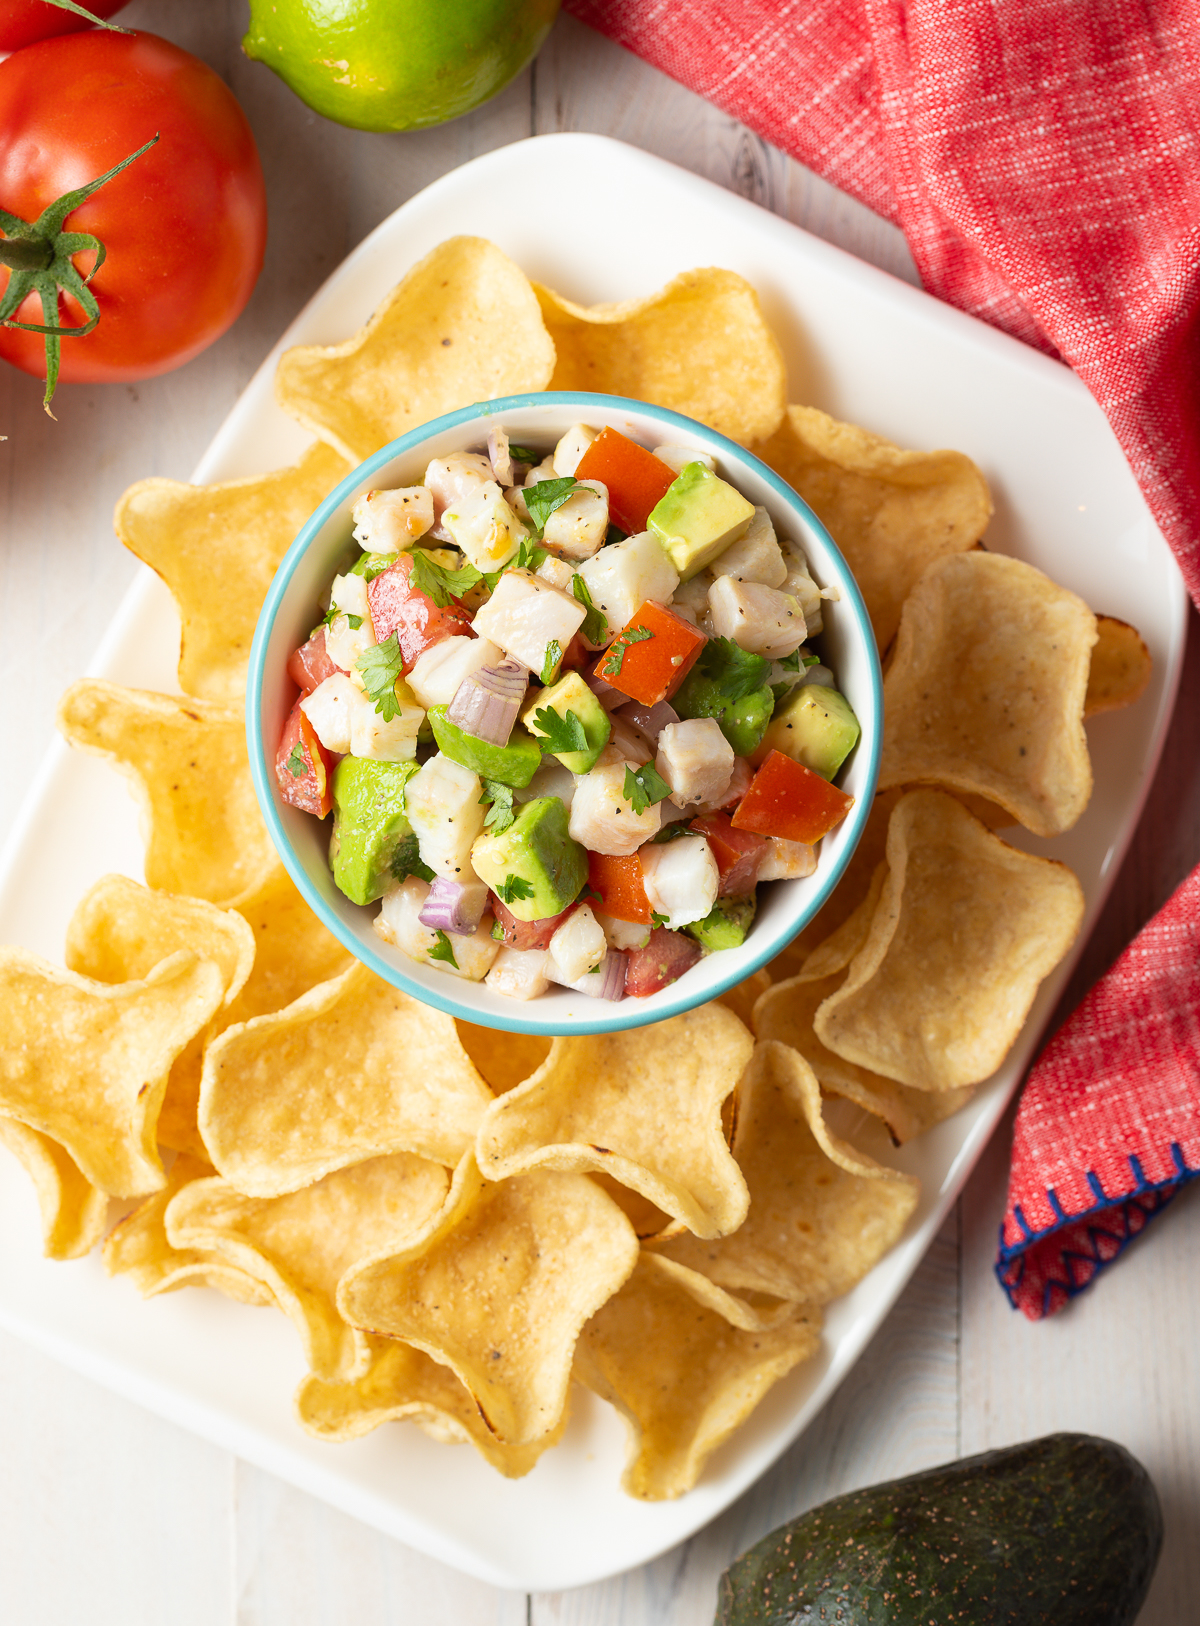 Ceviche #ASpicyPerspective #Ceviche #CevicheRecipe #HowtoMakeCeviche #CevicheIngredients #Healthy #LowCarb #Paleo